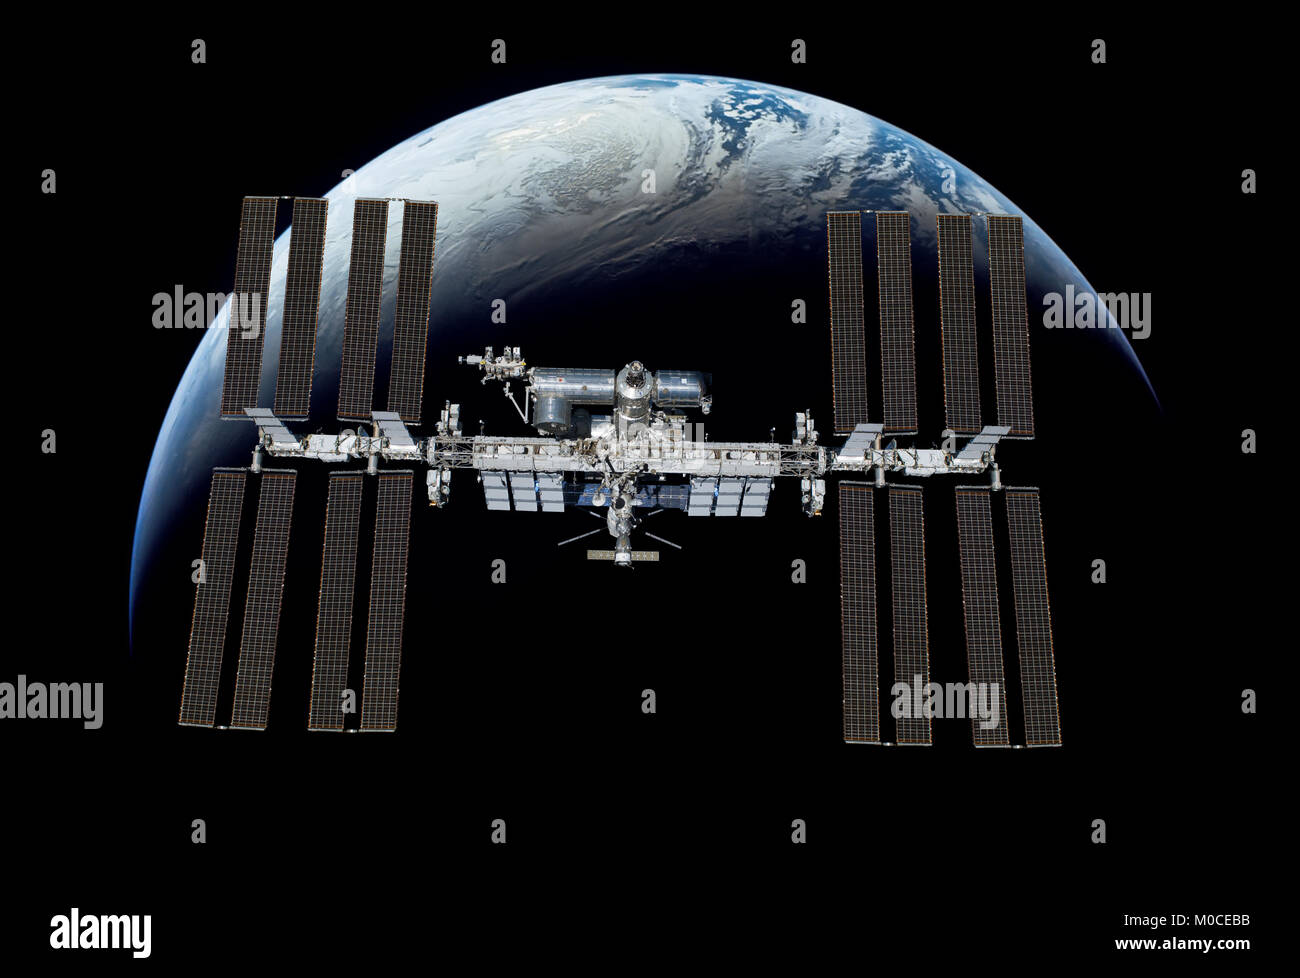 International Space Station over the planet earth. Elements of this image furnished by NASA. - Stock Image